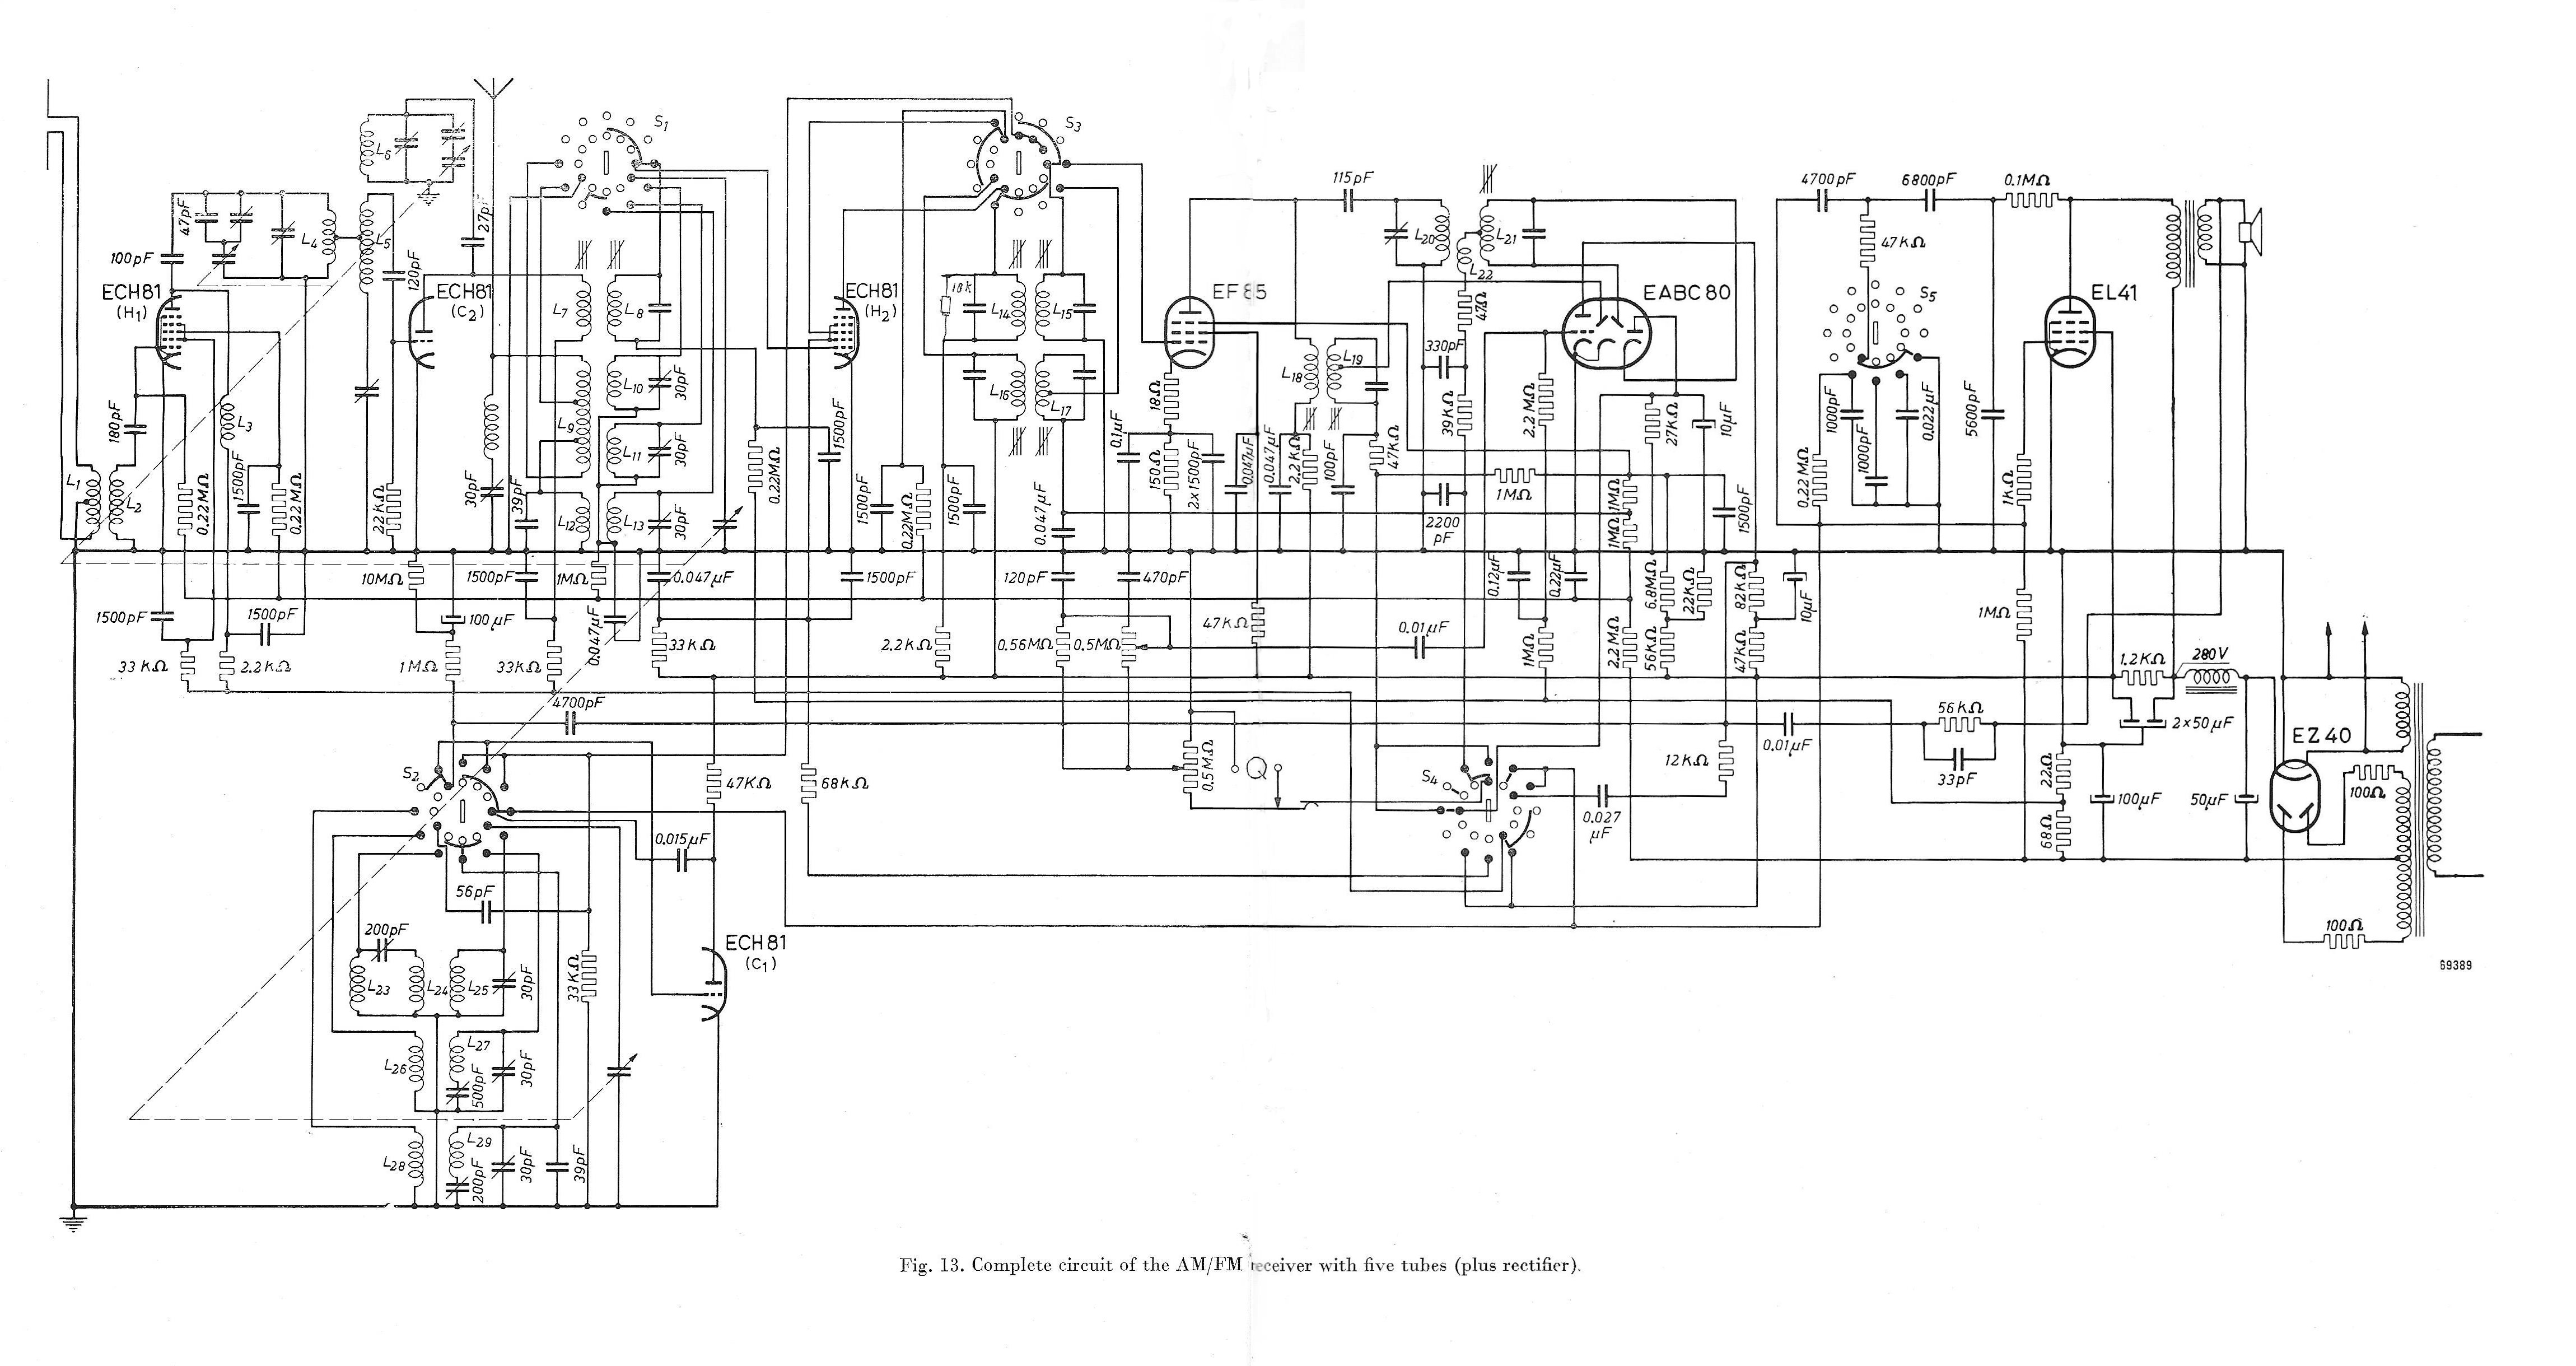 Eq 40 Tube Eq40 Rhre Id18615 Enneode Ultimate Wiring Diagram Philps Reference Design Of An Am Fm Receiver From Eab 1951 No Longer Using The Eq80 But Eabc80 Valve This Was 5 Plus Ez40